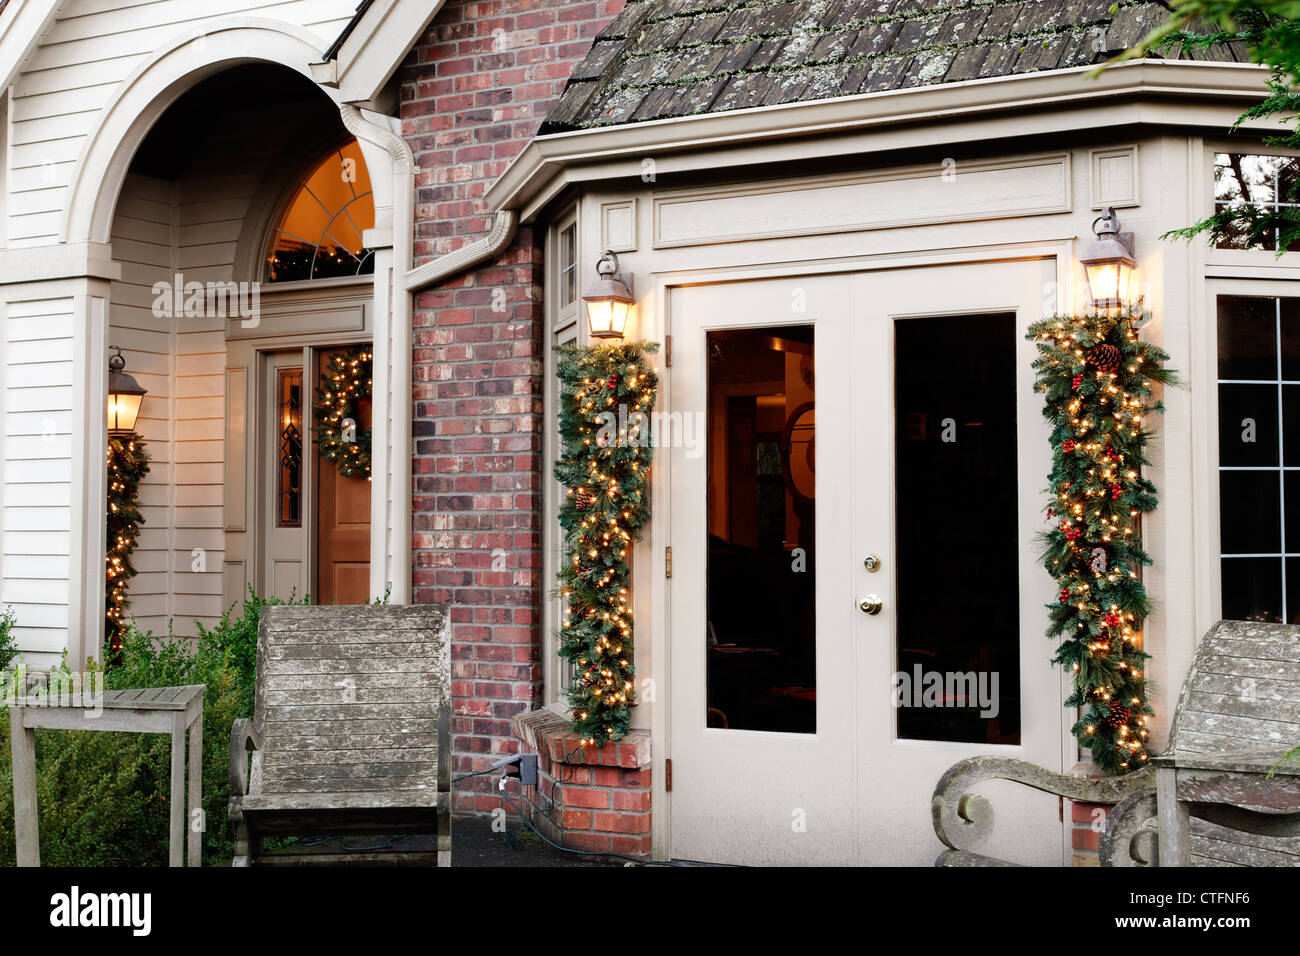 Outdoor Christmas decorations on french doors & porch